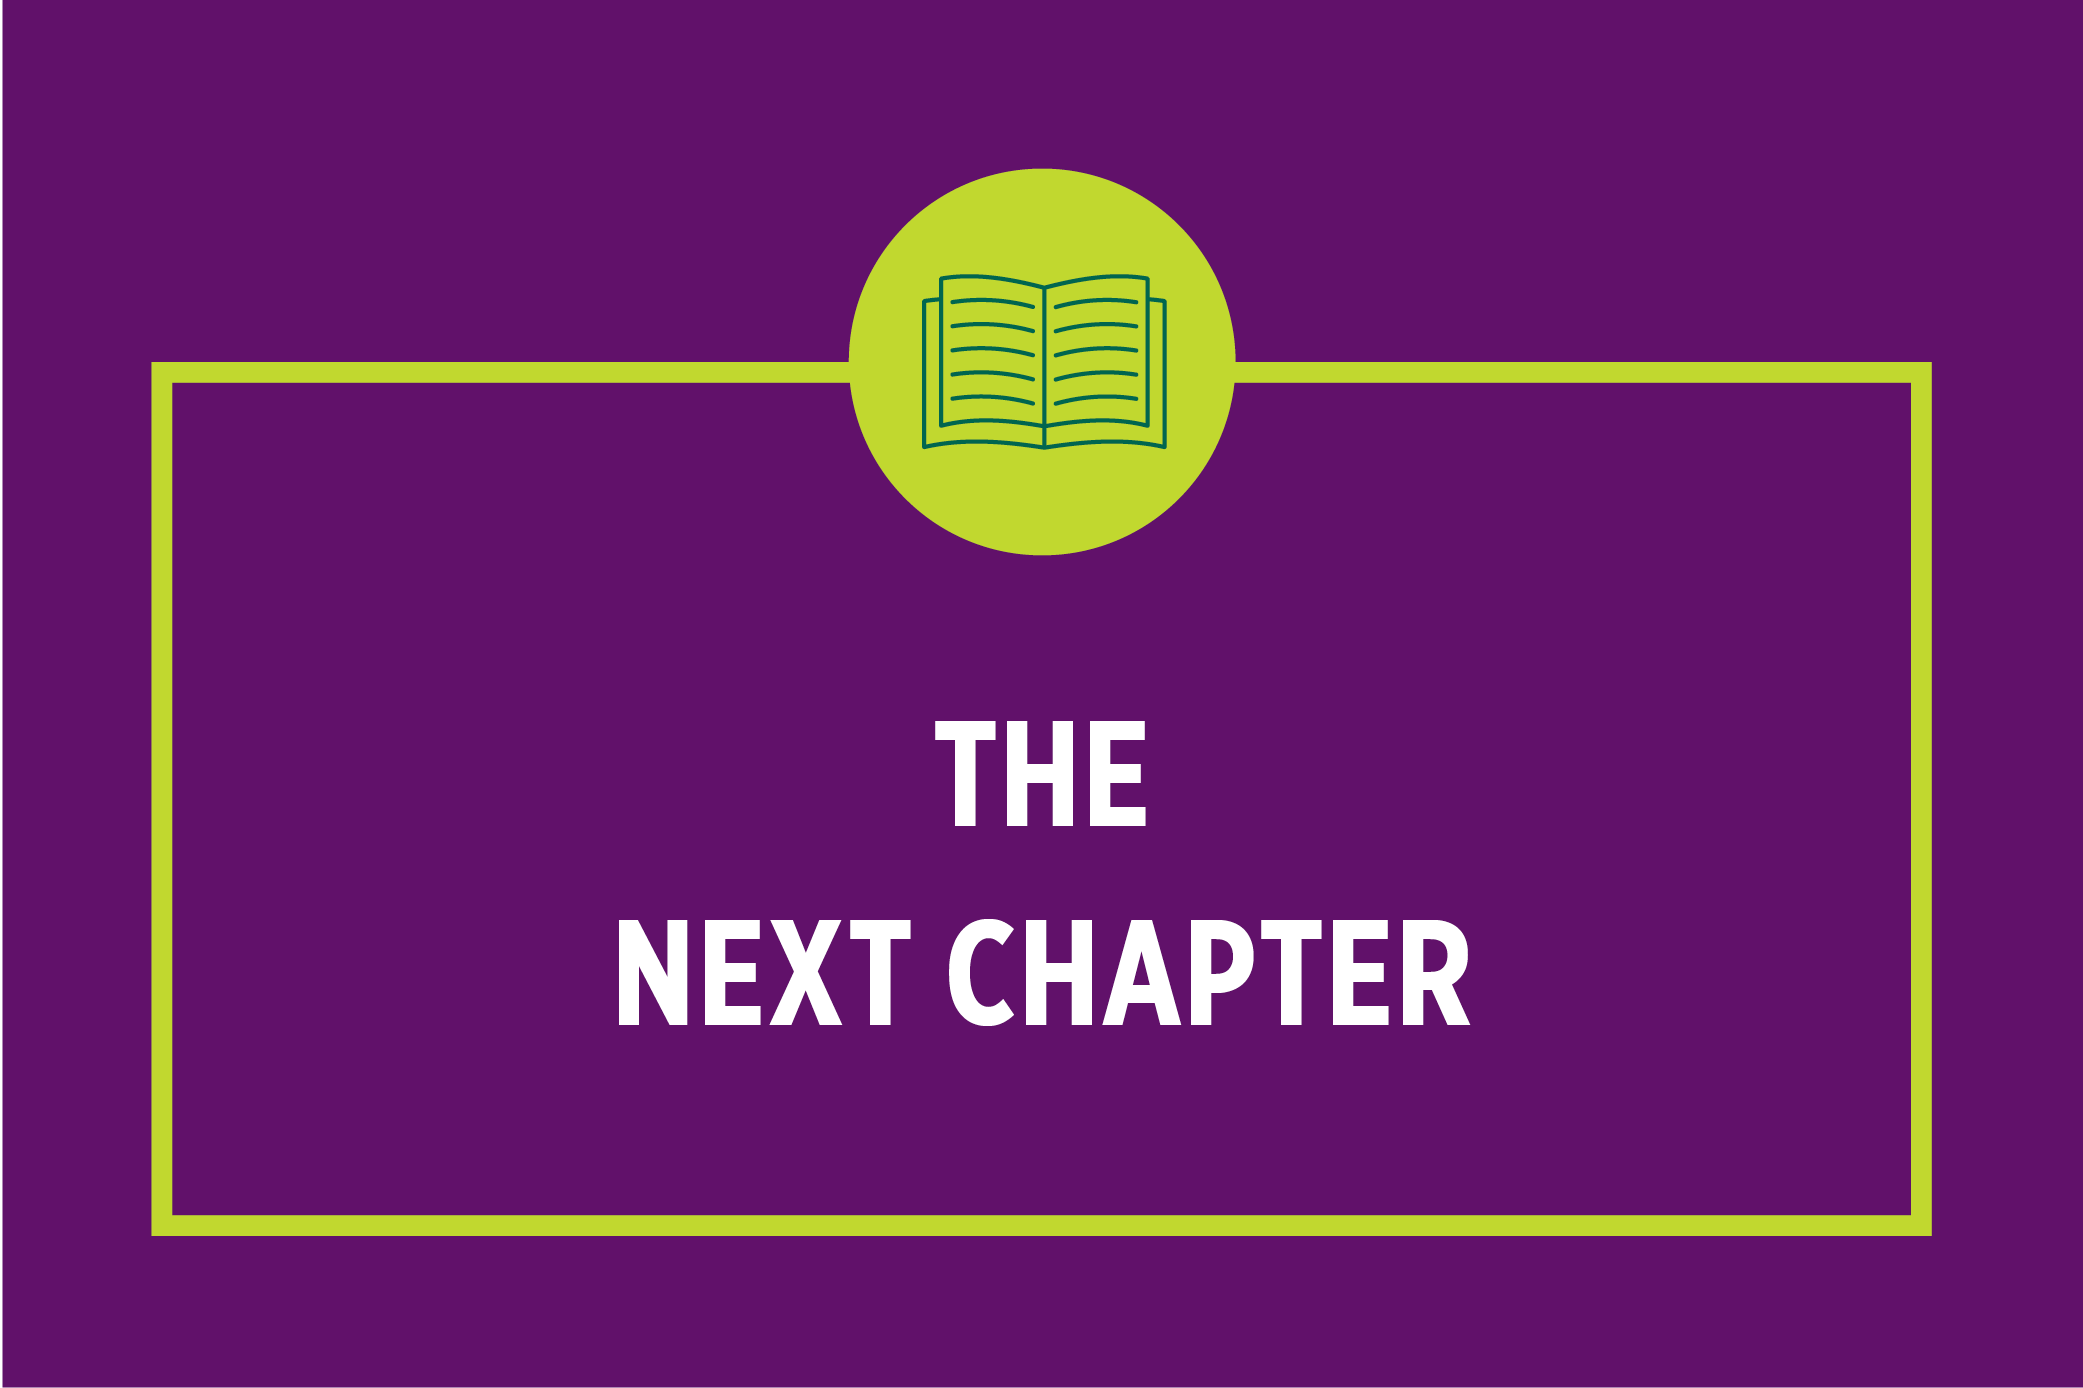 The Next Chapter: Cultivating a Sense of Purpose